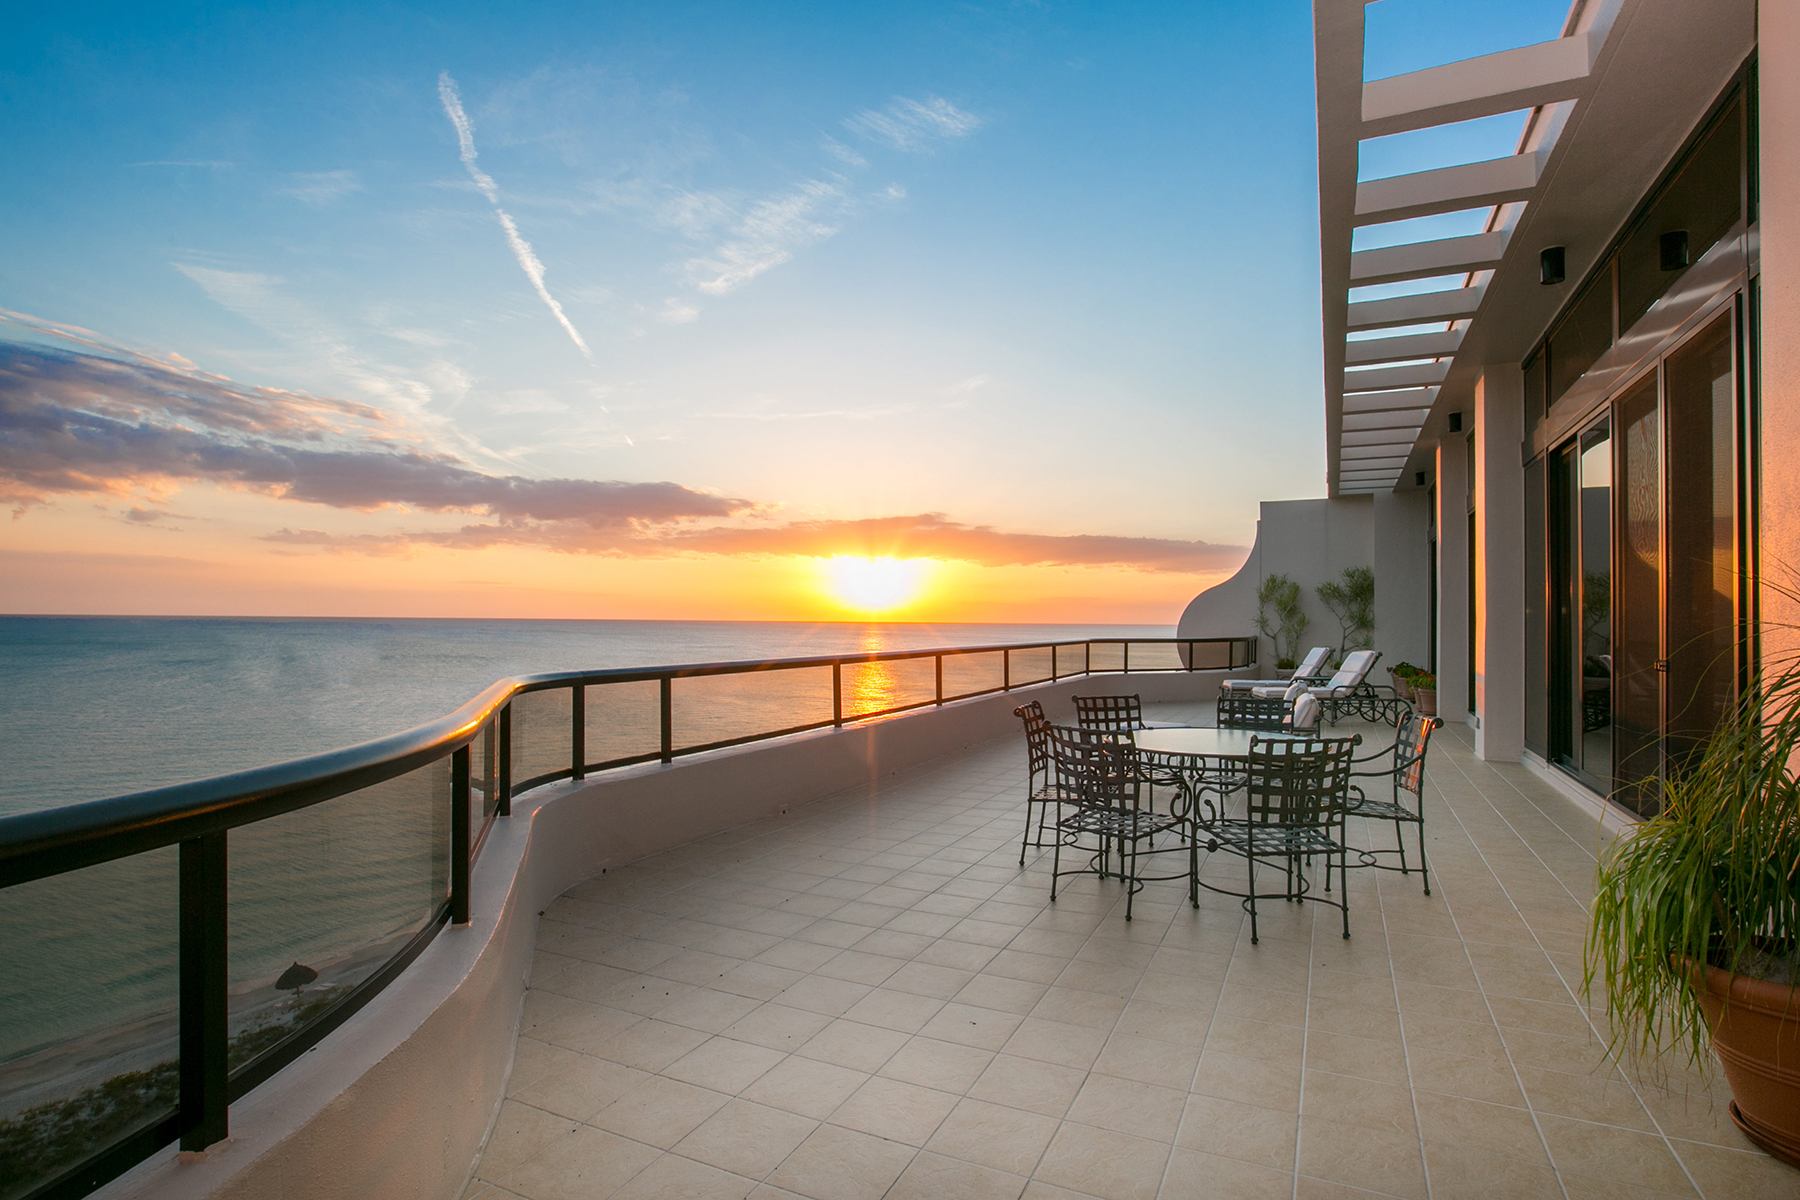 Condominium for Sale at LONGBOAT KEY 415 L Ambiance Dr PH-C, Longboat Key, Florida 34228 United States